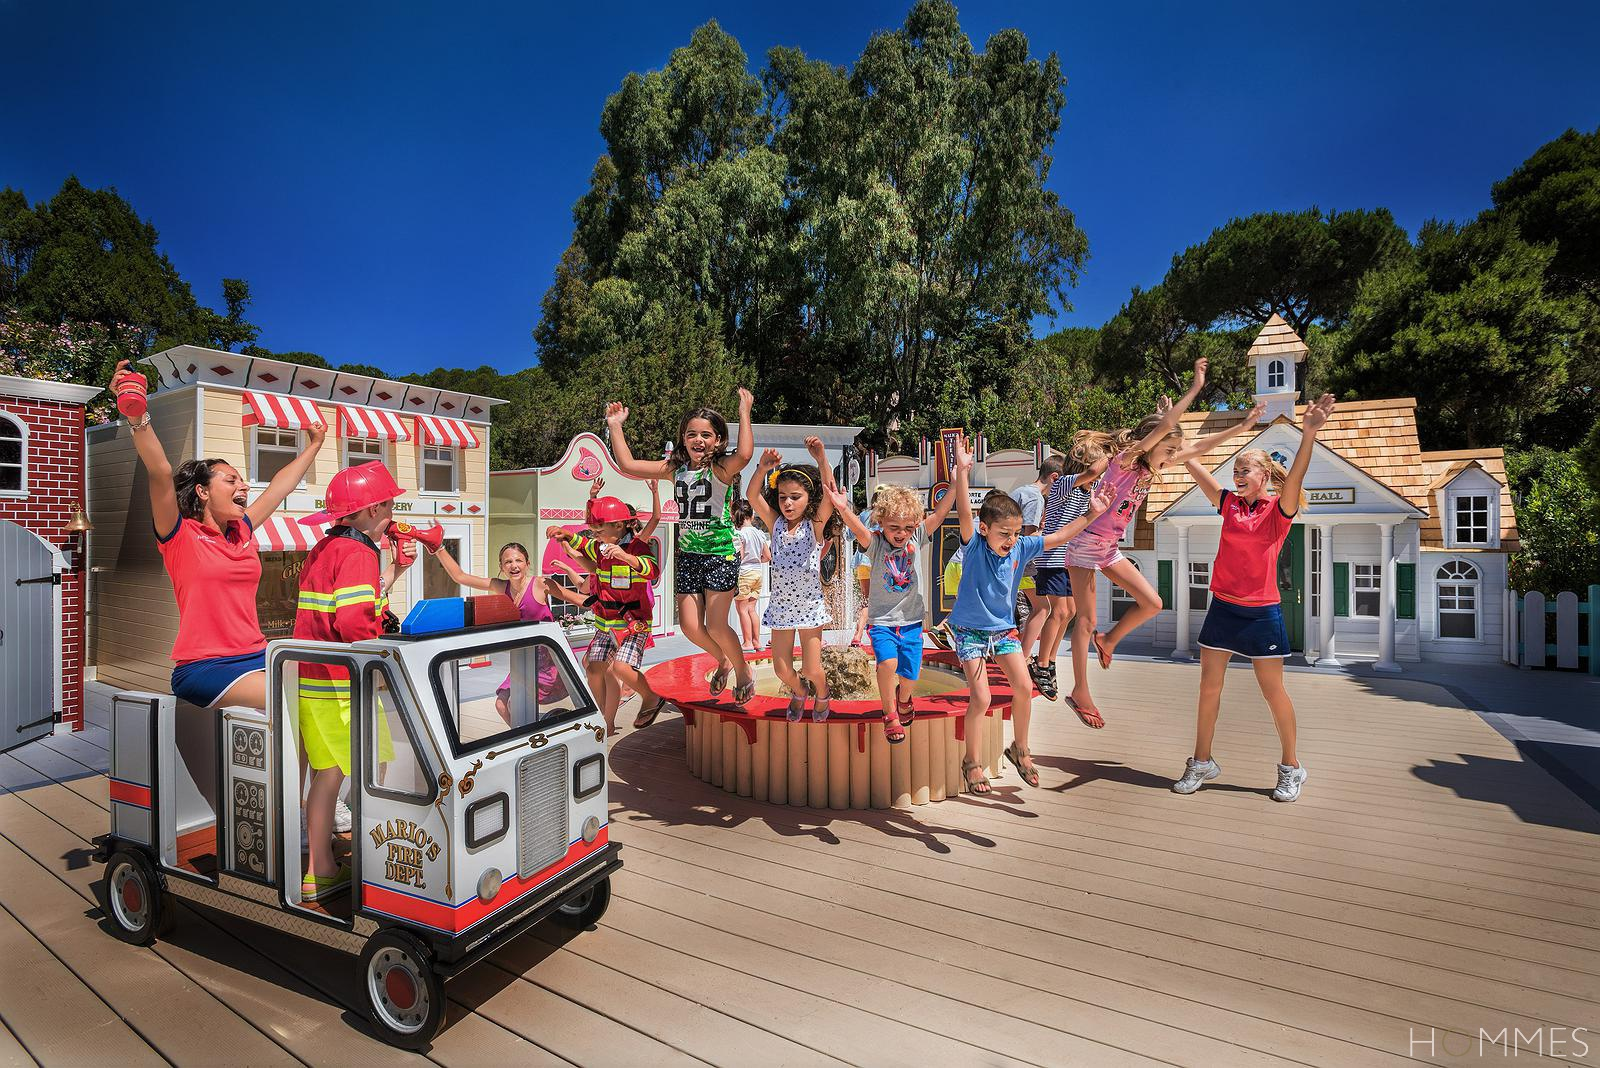 Children's wonderland_Forte Village-min.jpg